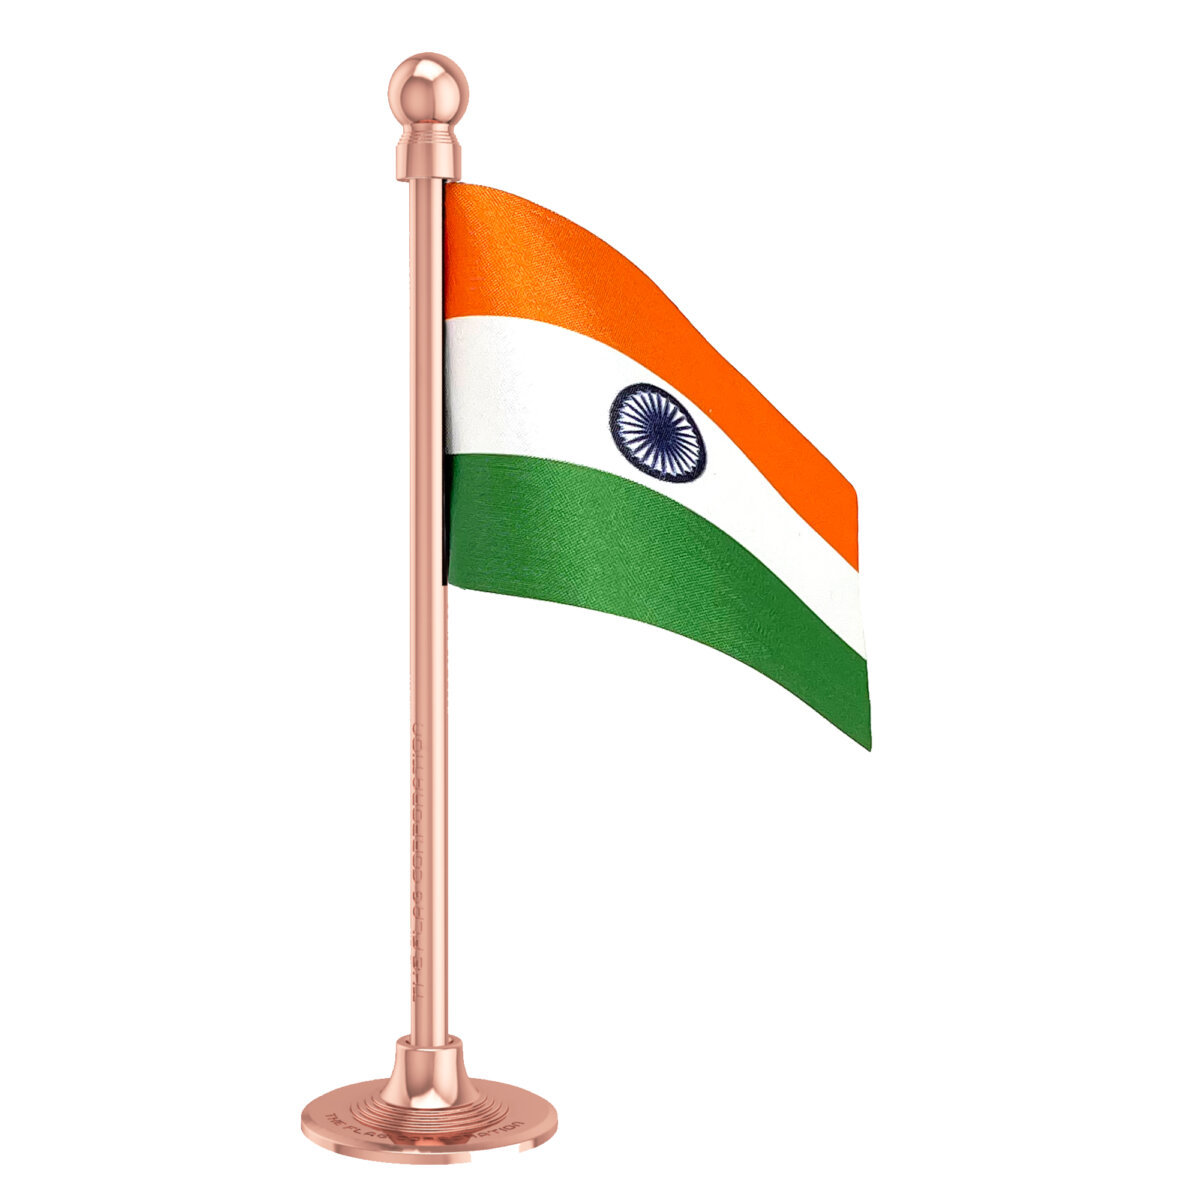 The Flag Shop Indian Car Dashboard Flag 2in x 3in with a Stainless Steel Blush Rose Gold Base